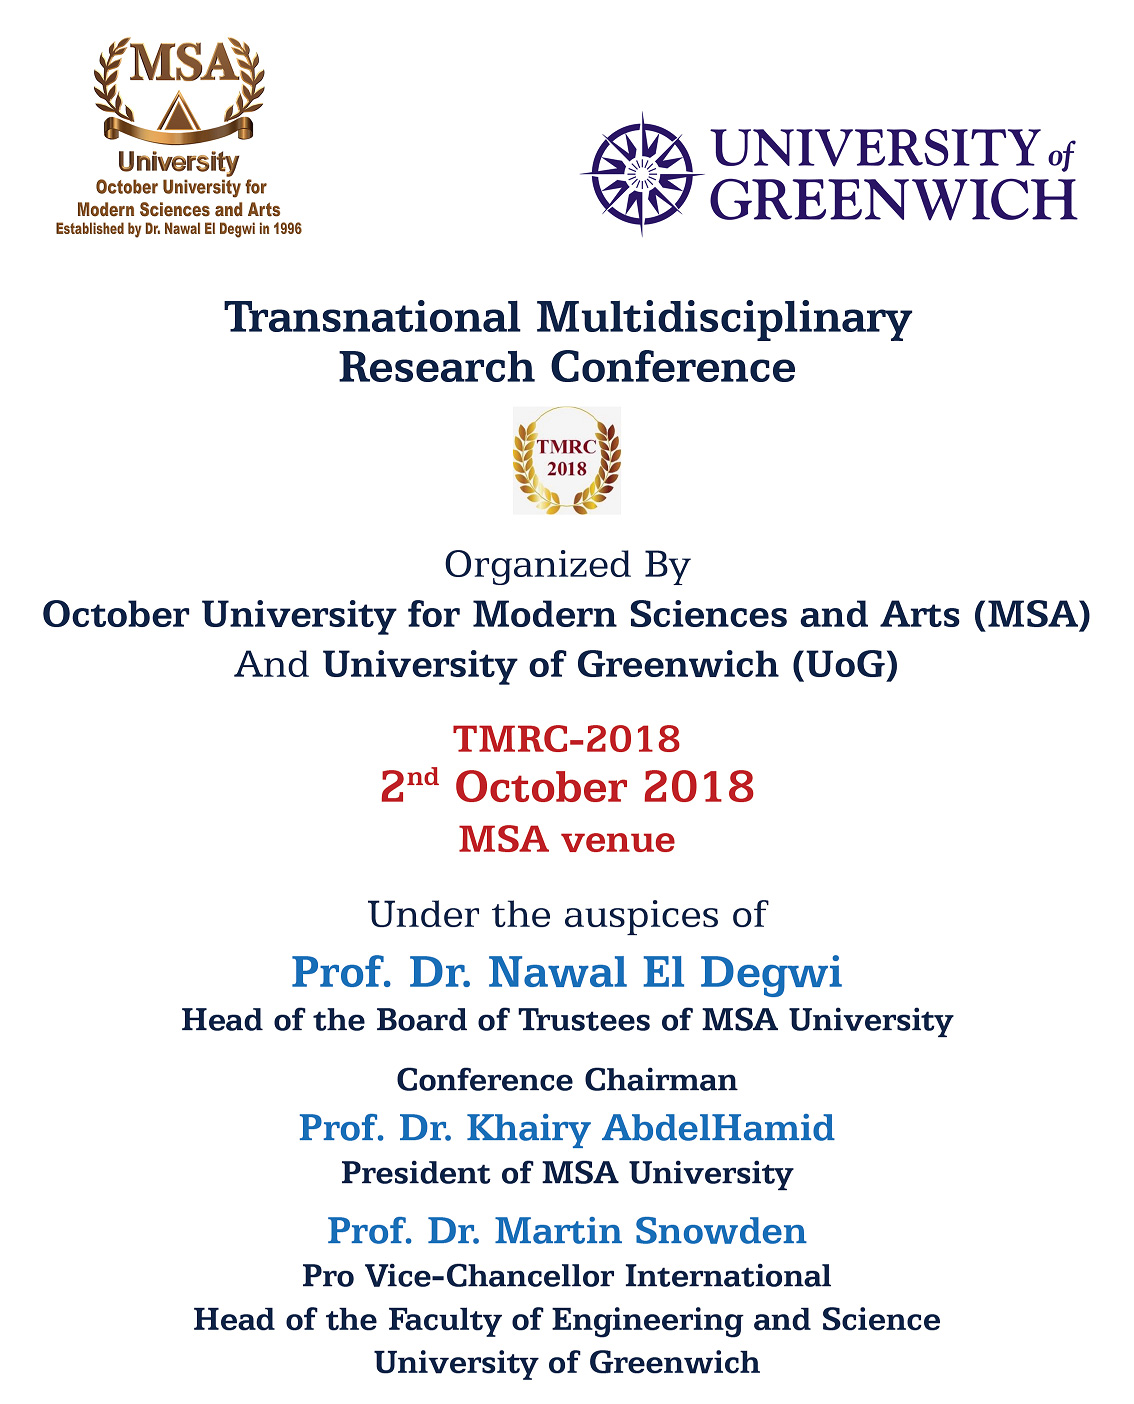 MSA University - Transnational Multidisciplinary Research Conference